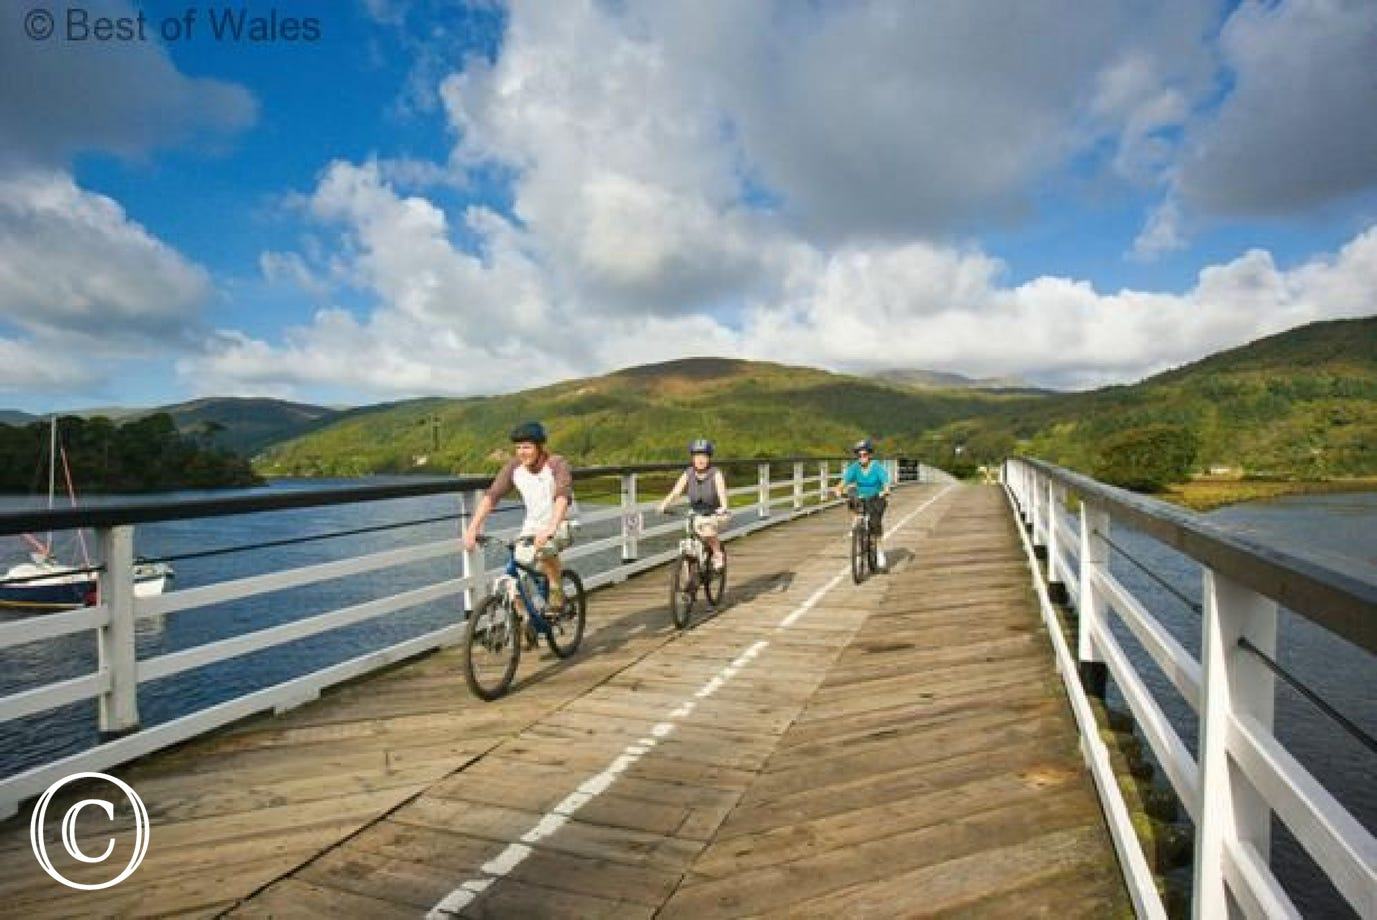 Walk or cycle the Mawddach Trail and enjoy the magnificent views